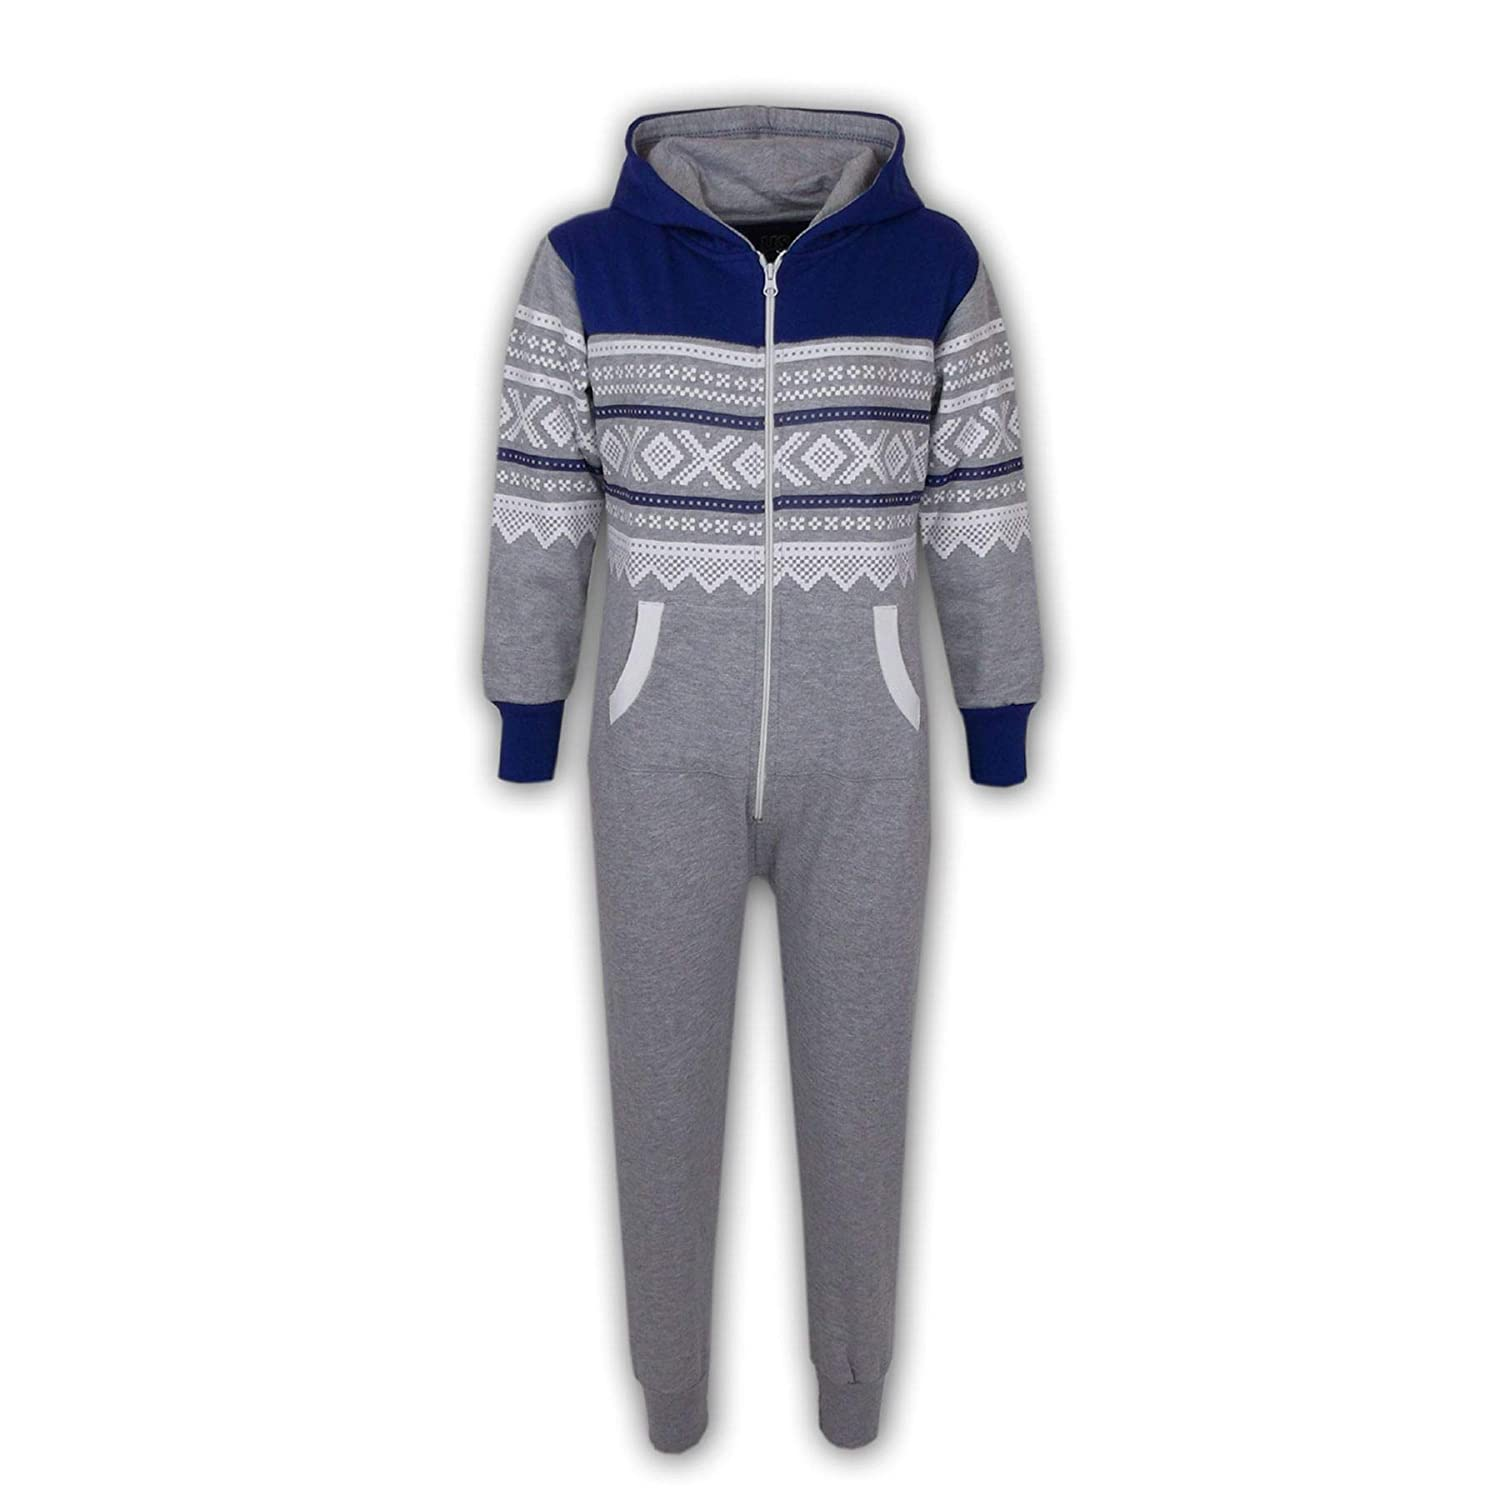 A2Z 4 Kids/® Kids Girls Boys Aztec Snowflake Print Hooded Onesie All in One Jumpsuit Age 5 6 7 8 9 10 11 12 13 Years